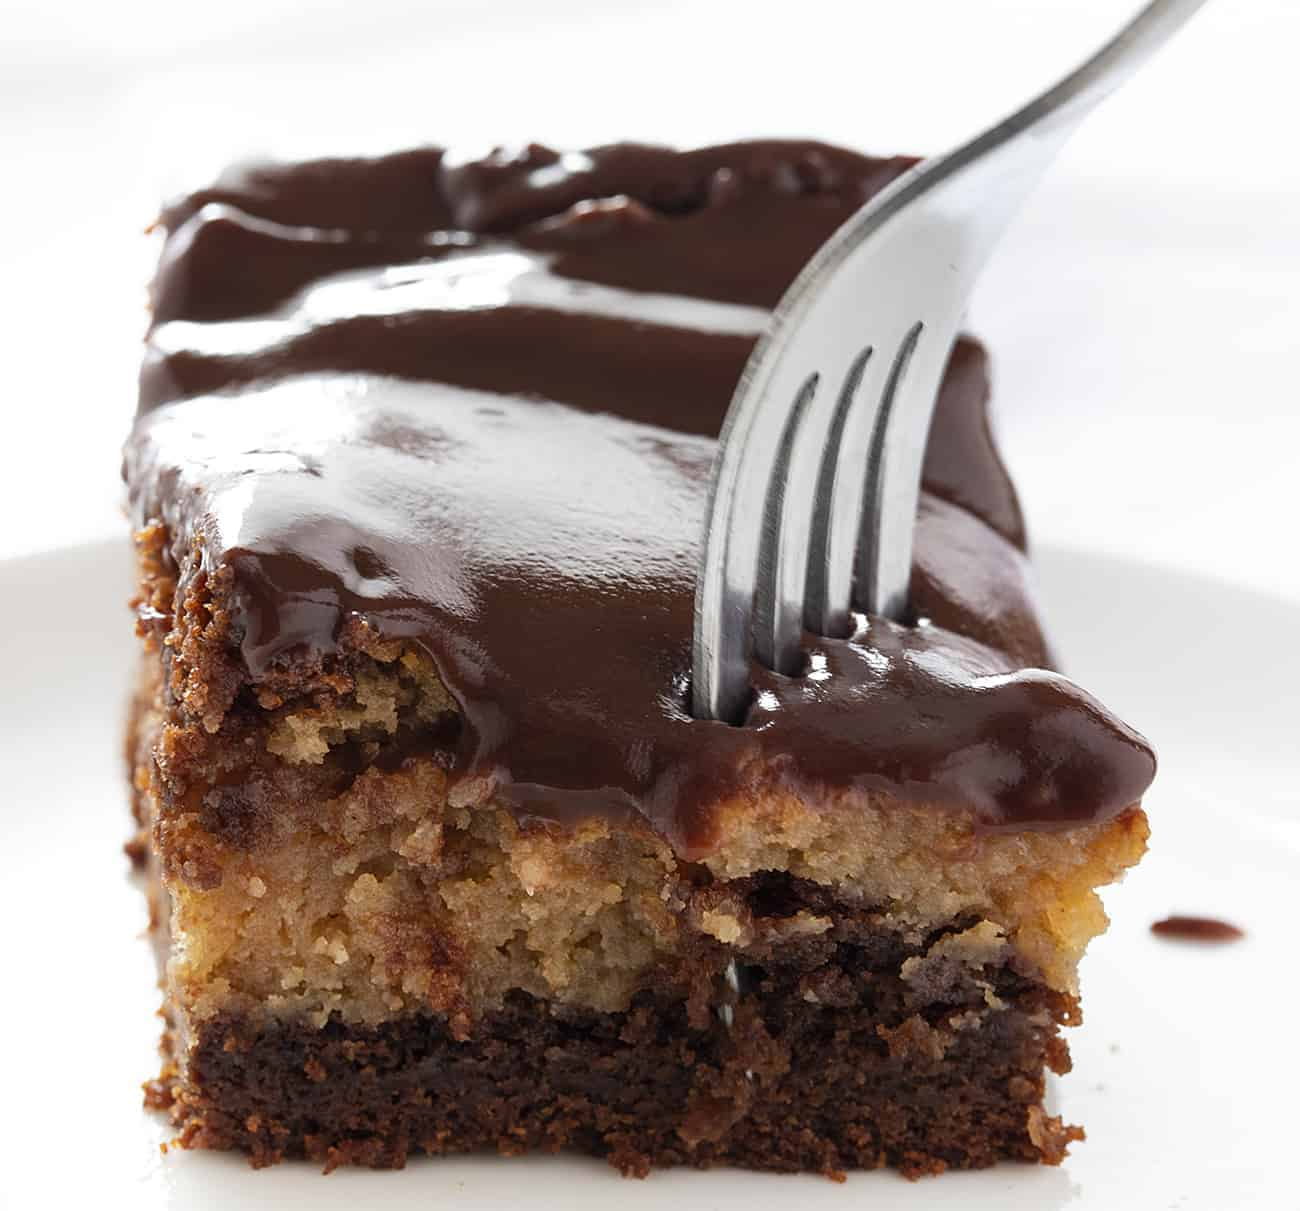 Fork Taking Piece from Chocolate Peanut Butter Ooey Gooey Cake